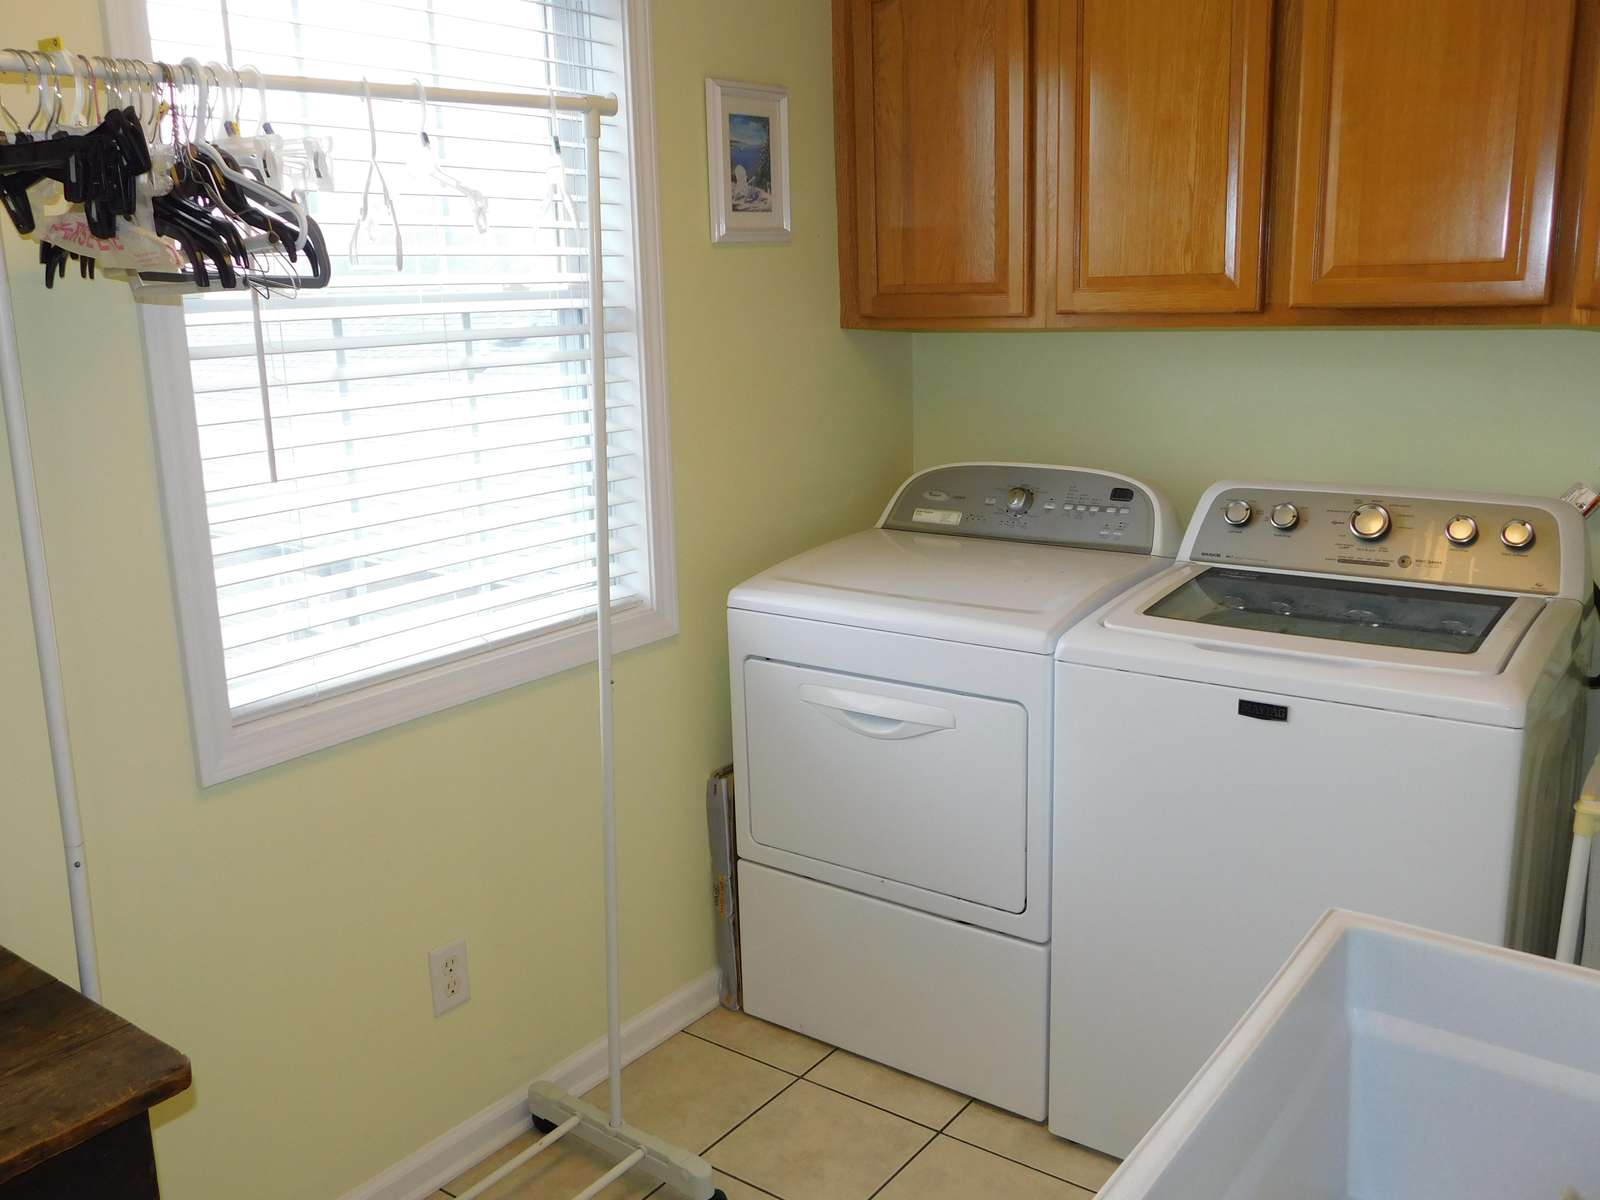 Laundry room with ironing board and iron